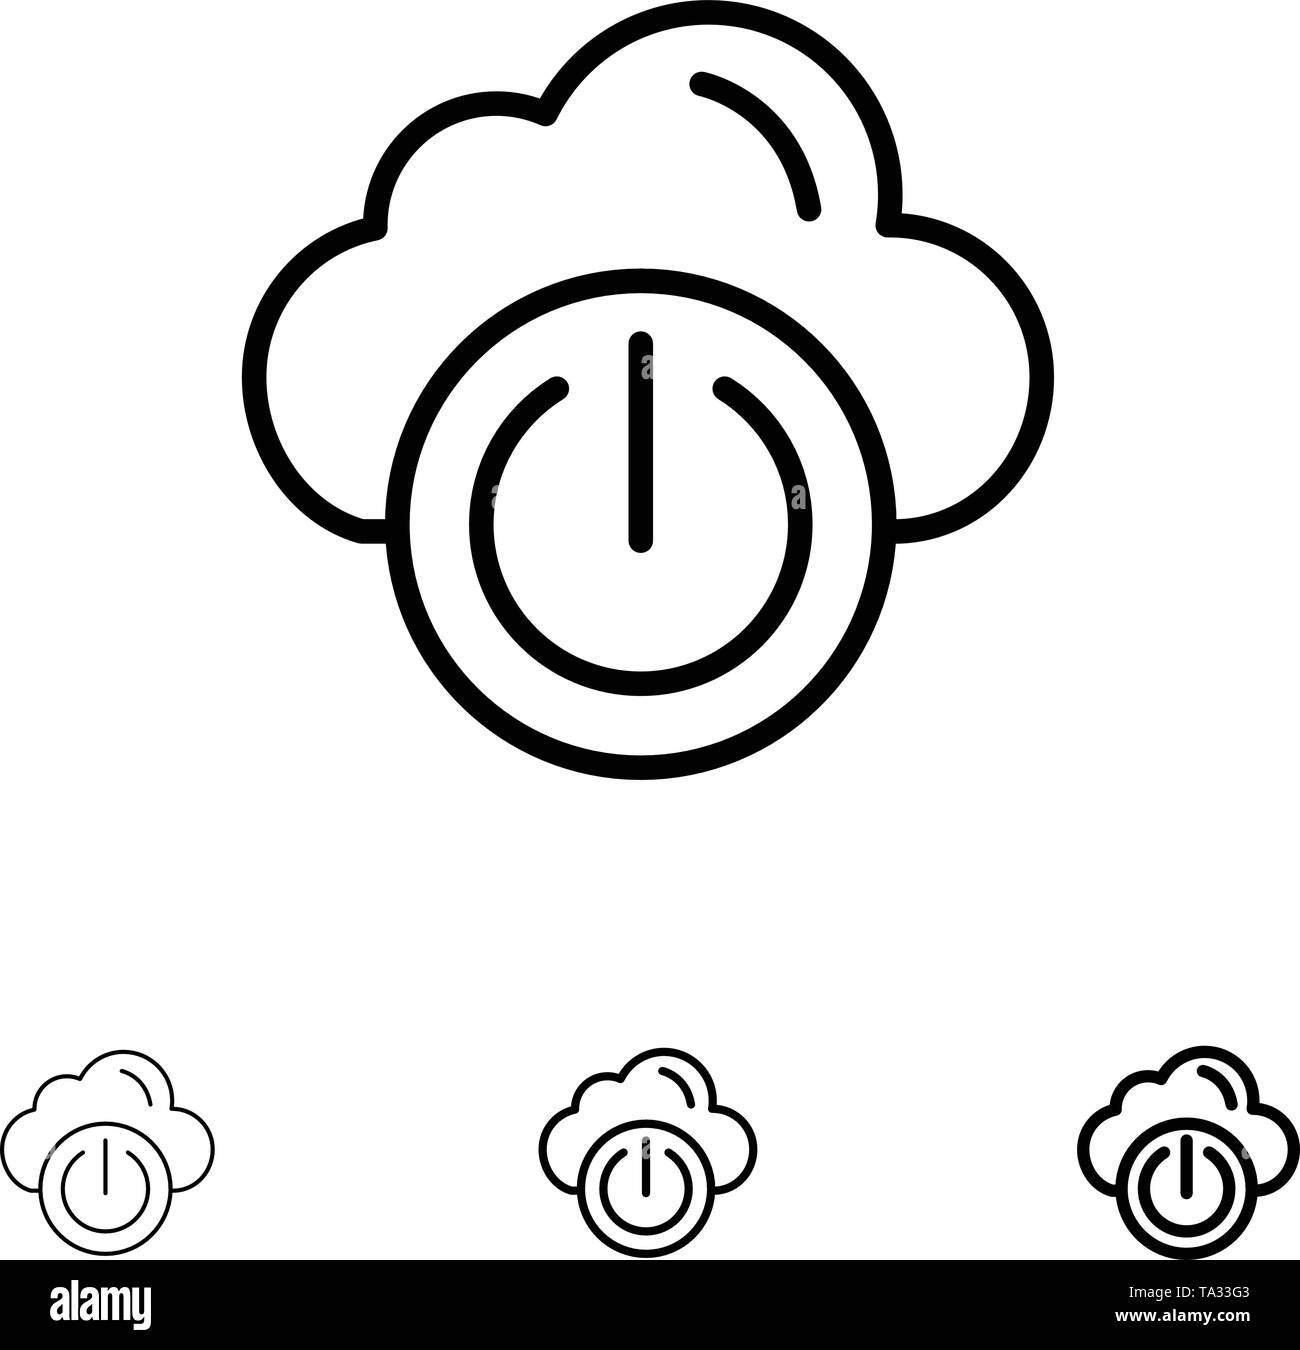 Cloud, Power, Network, Off Bold and thin black line icon set - Stock Image